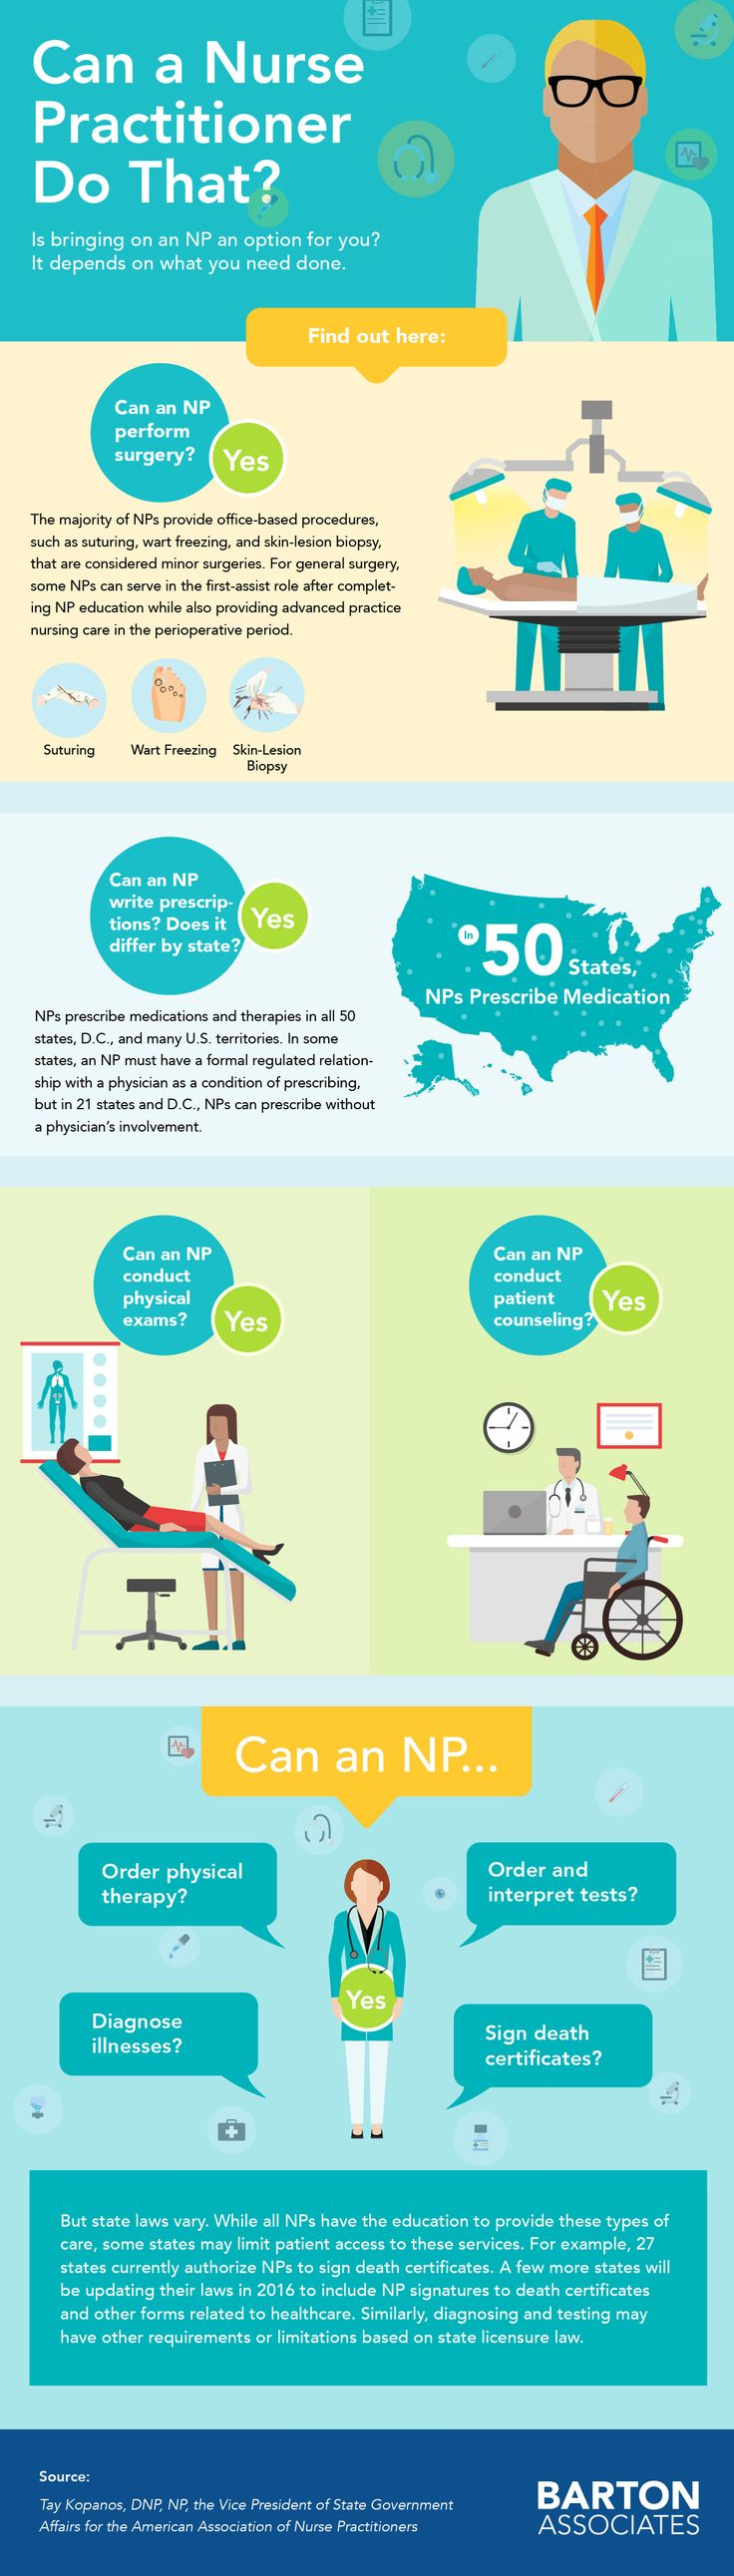 best ideas about nurse practitioner programs the can a nurse practitioner do that infographic think you need to hire a